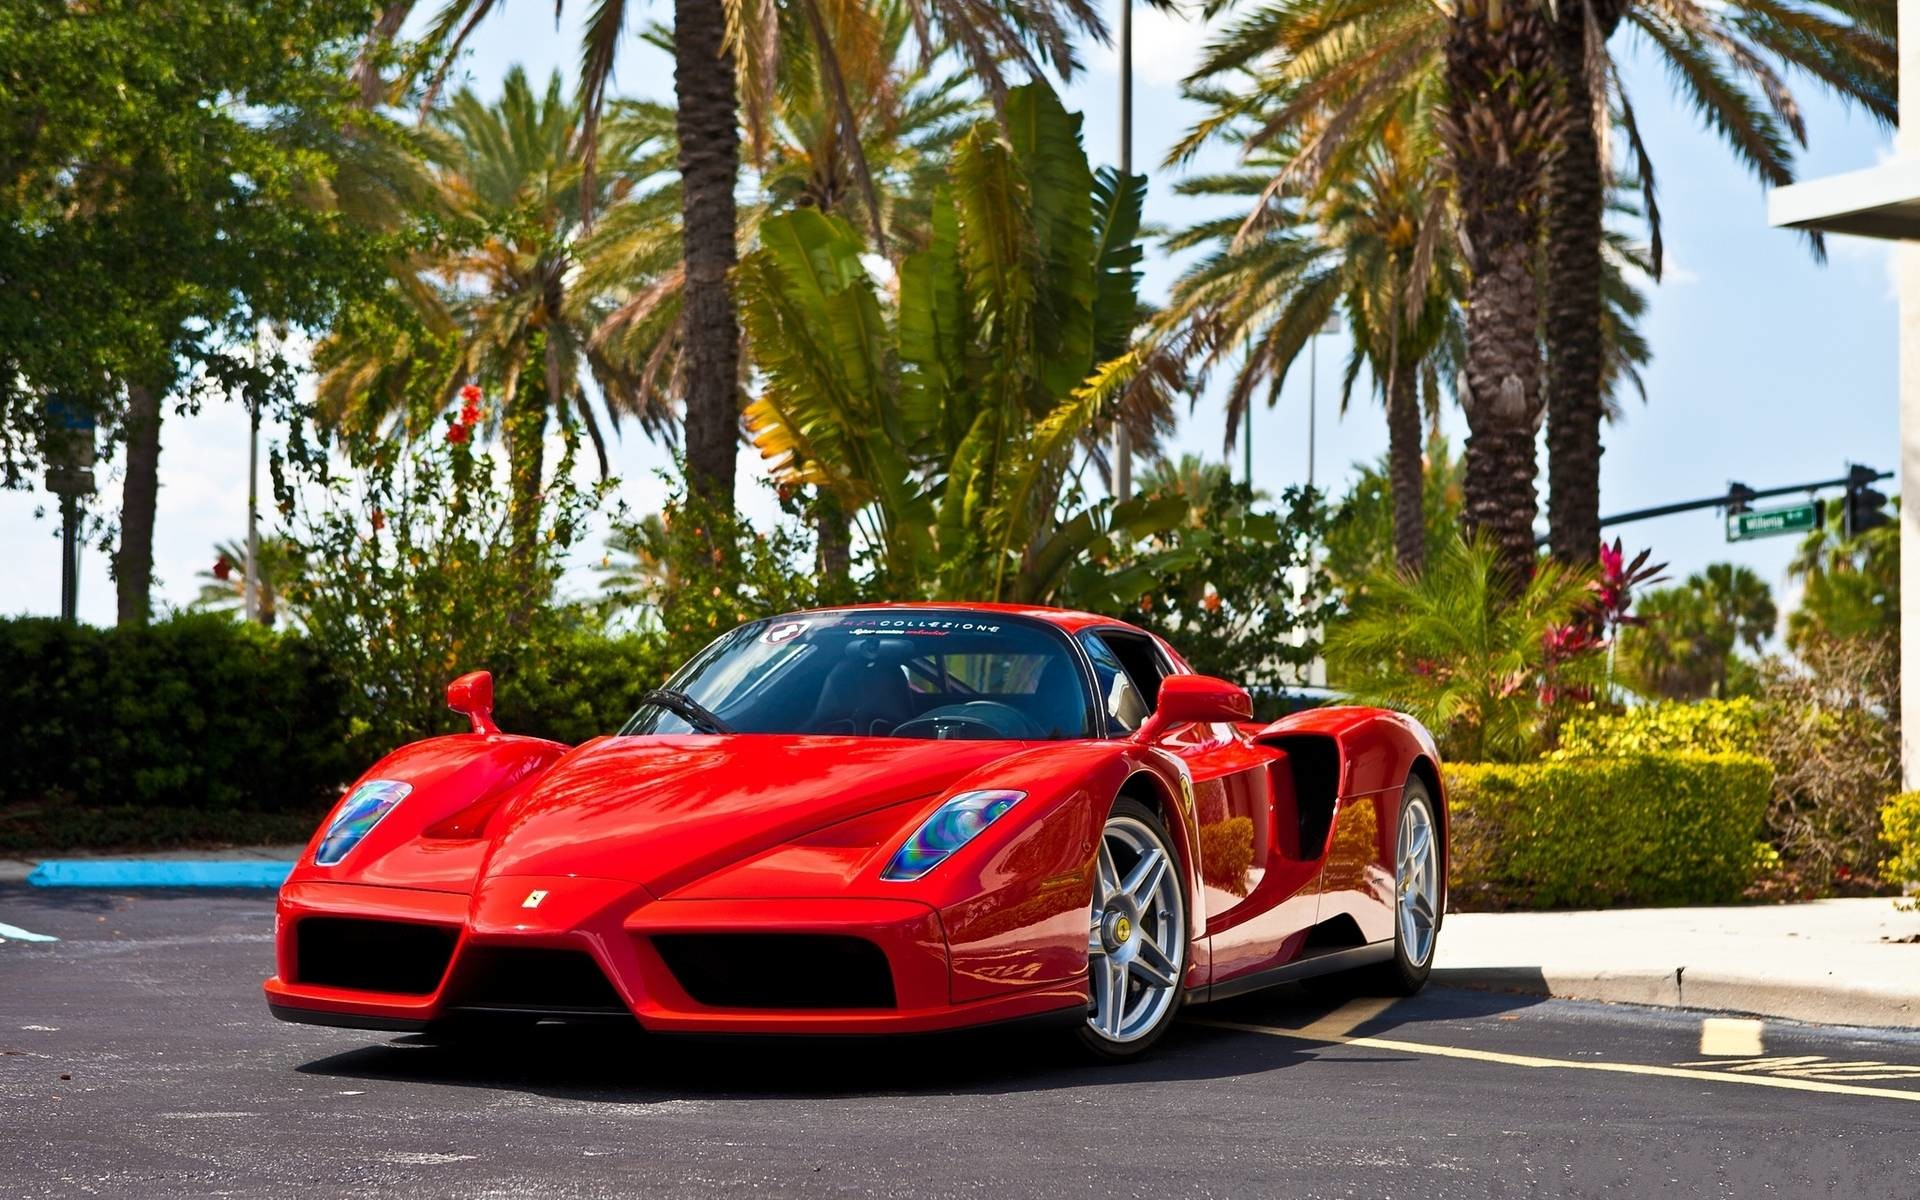 1920x1200 Wallpapers For > Ferrari Enzo Wallpaper Widescreen